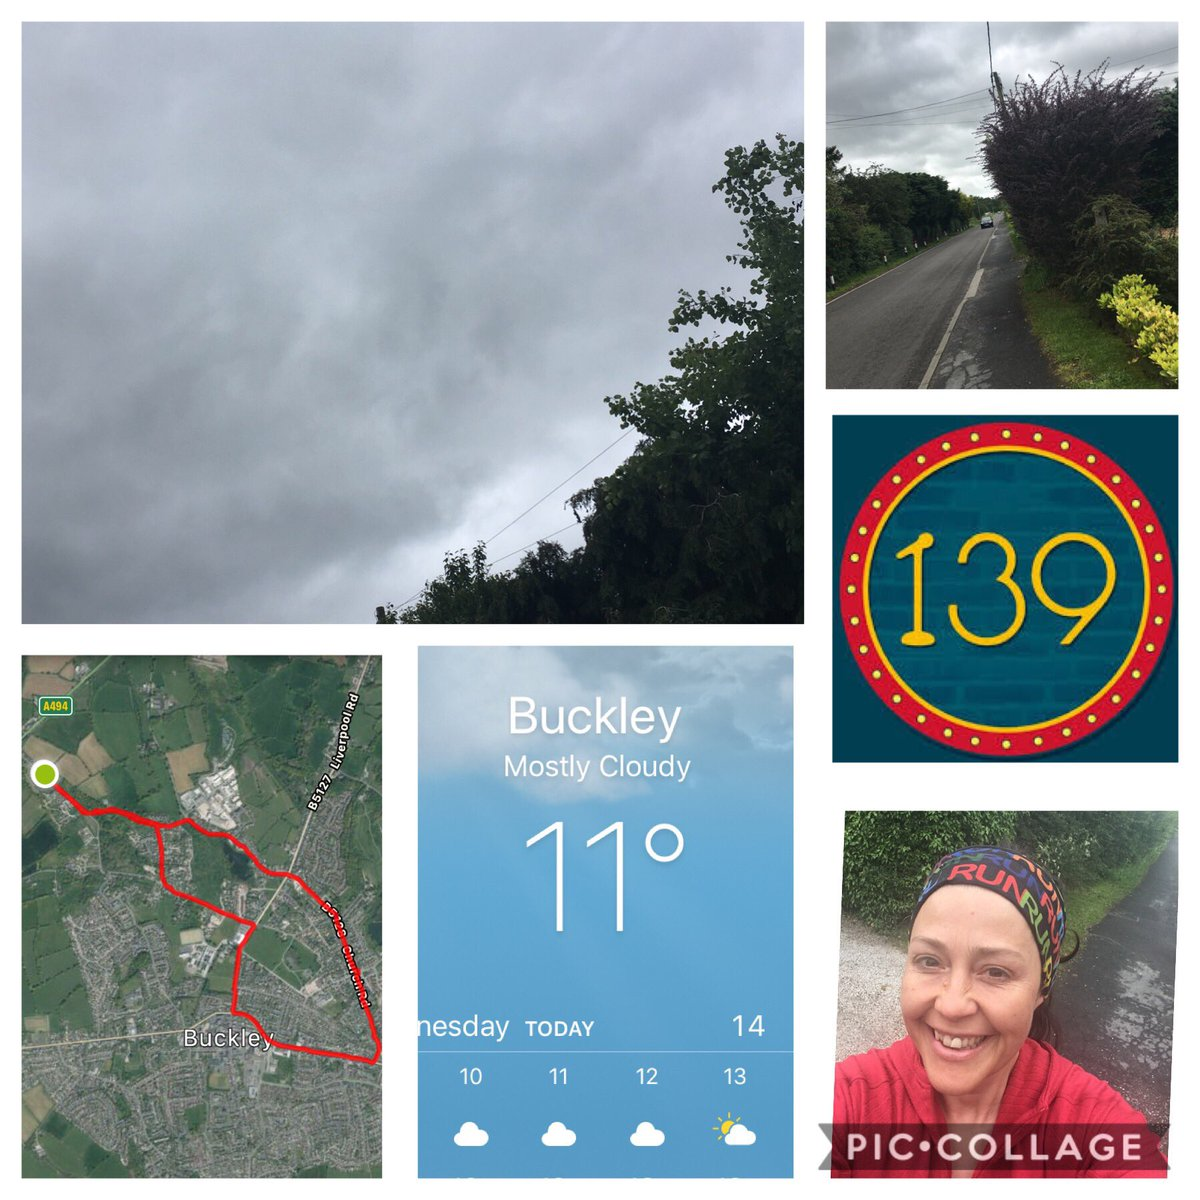 Look at those grey skies , very miserable for June, but 139th 5k EVER #5kever in the bag . Had the long sleeved top on today, I mean 11' in June! Depressing @slimmingworld @uamapmyrun #run #runlaurarun #running #runner #uk #wales #intraining @dementia_uk #doingitfordadpic.twitter.com/gpM0Xh8nhH